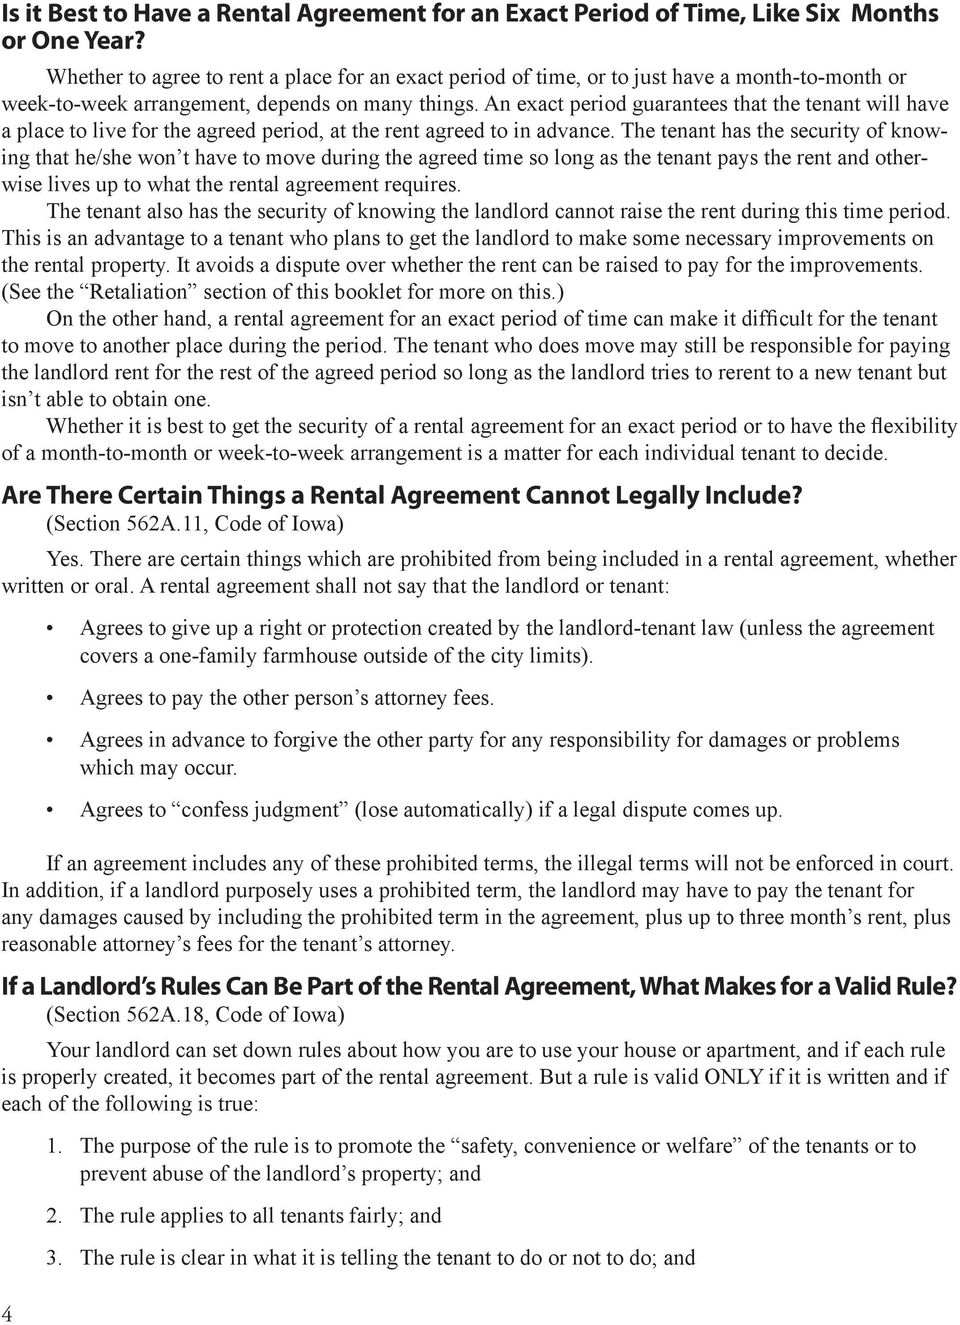 A Guide To Landlord Tenant Law In Iowa Pdf